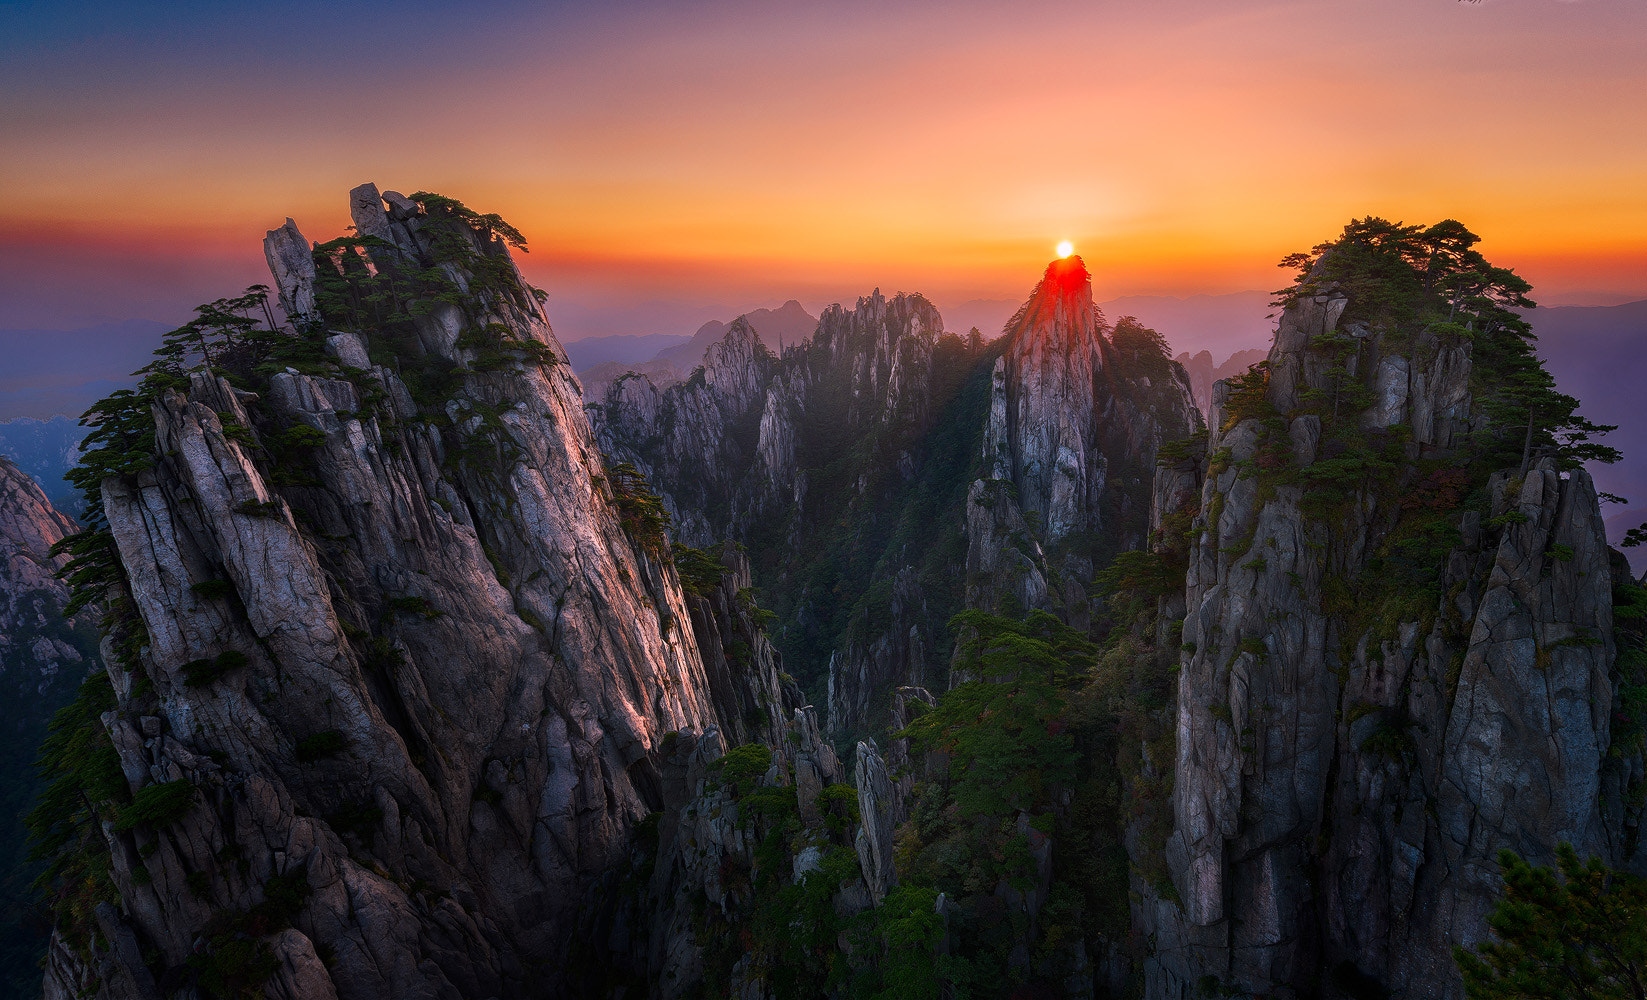 Photograph The Rising Sun by Joshua Zhang on 500px